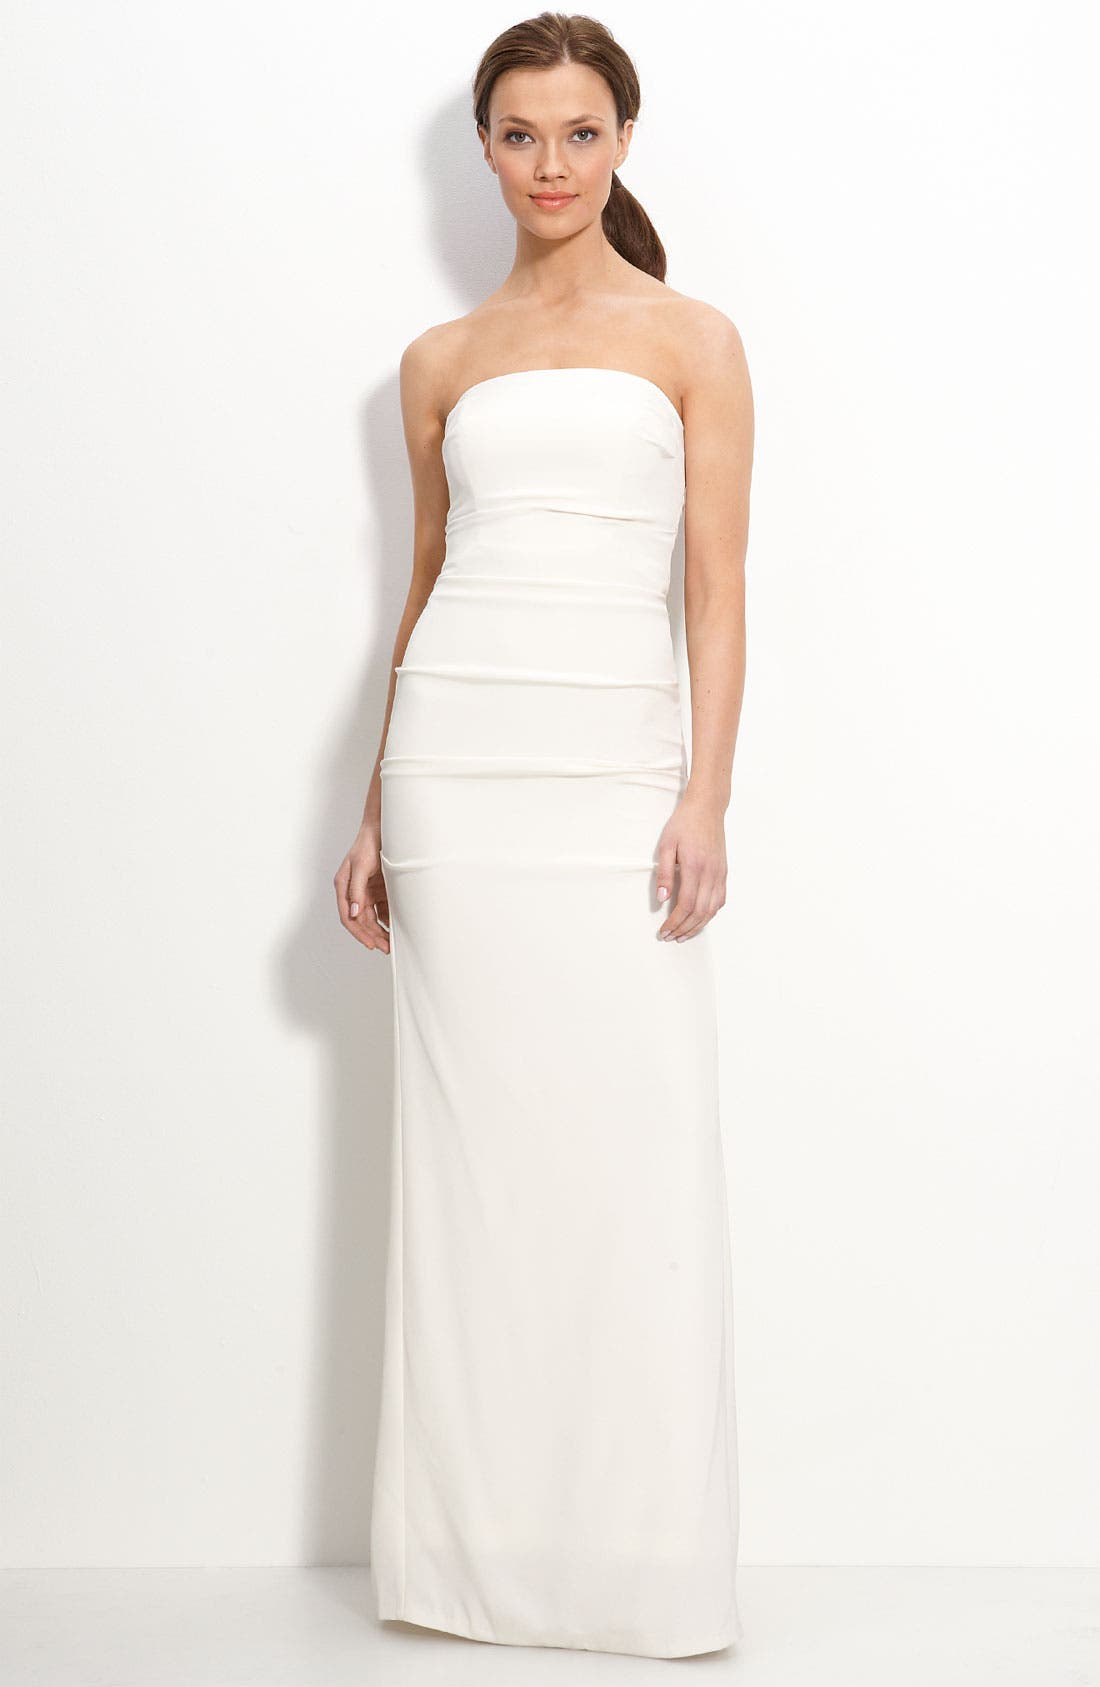 Main Image - Nicole Miller Pintucked Crêpe de Chine Strapless Gown